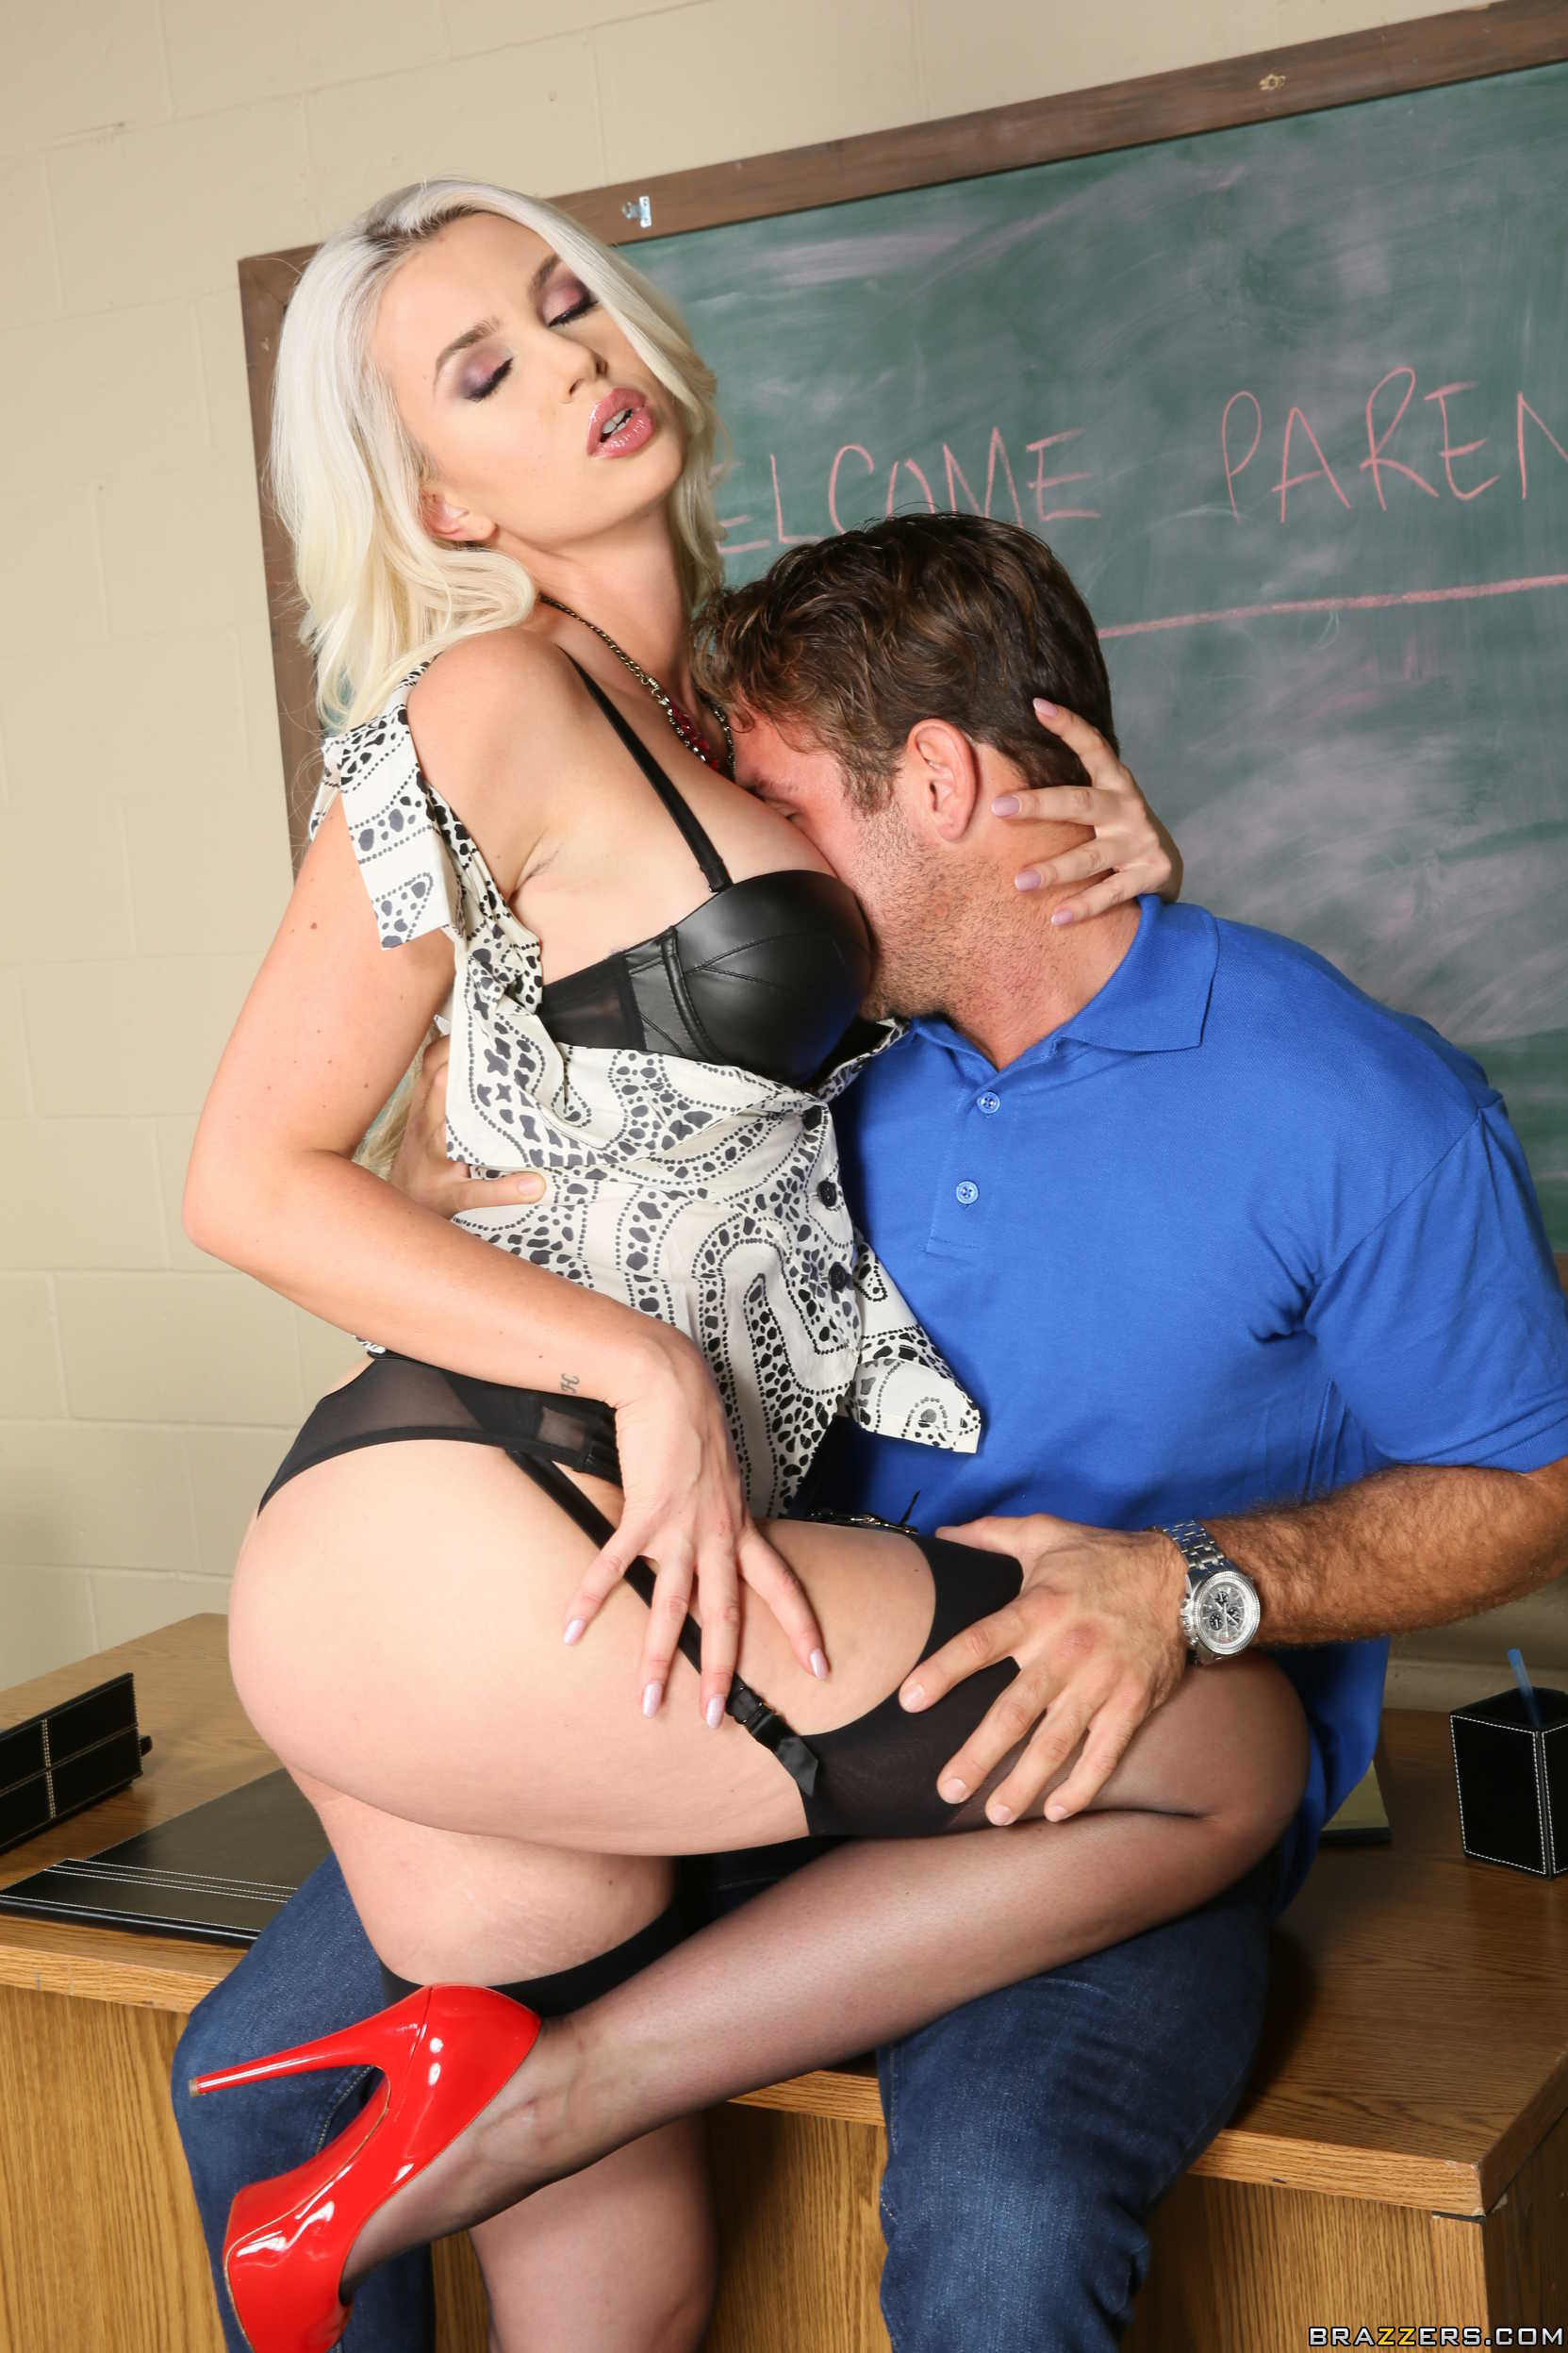 Milf teacher parent conference - 1 part 1